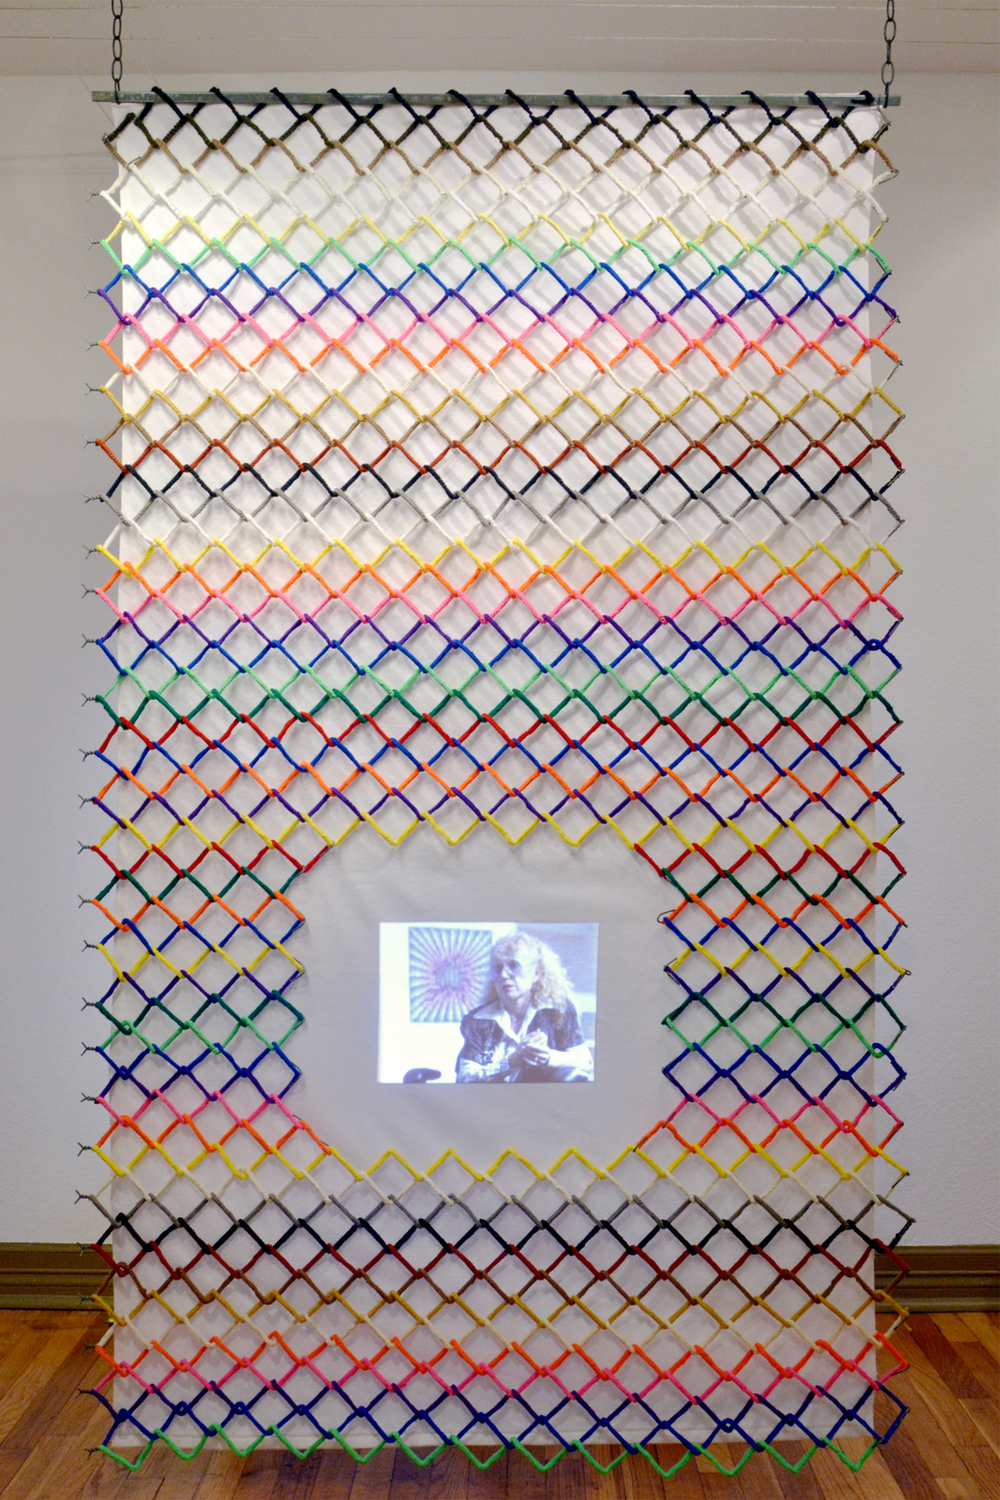 Let Me In Let Me Out Acrylic yarn, chain-link fence, cotton flannel and digital video projection with sound 80 x 48 x 2 in.